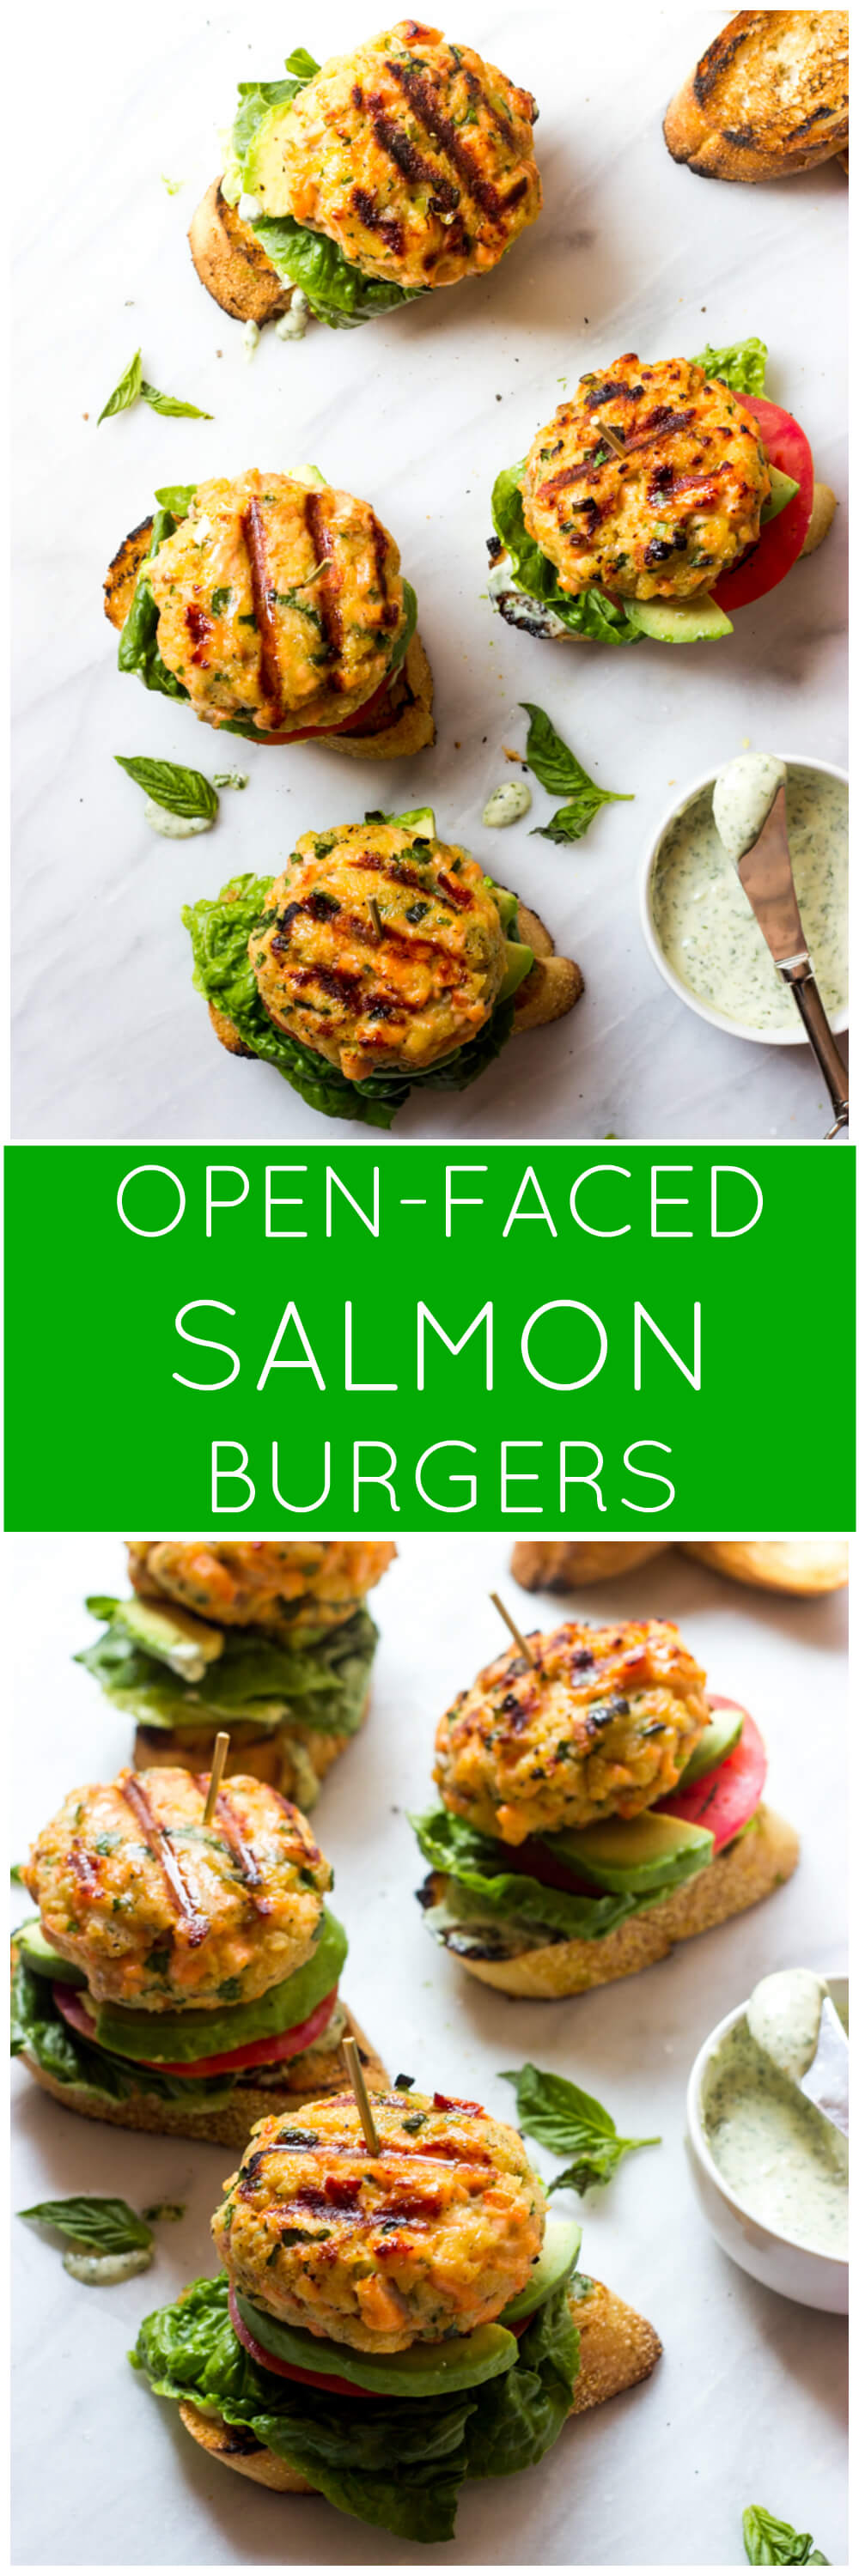 Open-Faced Salmon Burgers - made with fresh salmon and served on toasted baguette with tomato, lettuce, avocado, and basil mayo. These are healthy and quick to make! | littlebroken.com @littlebroken